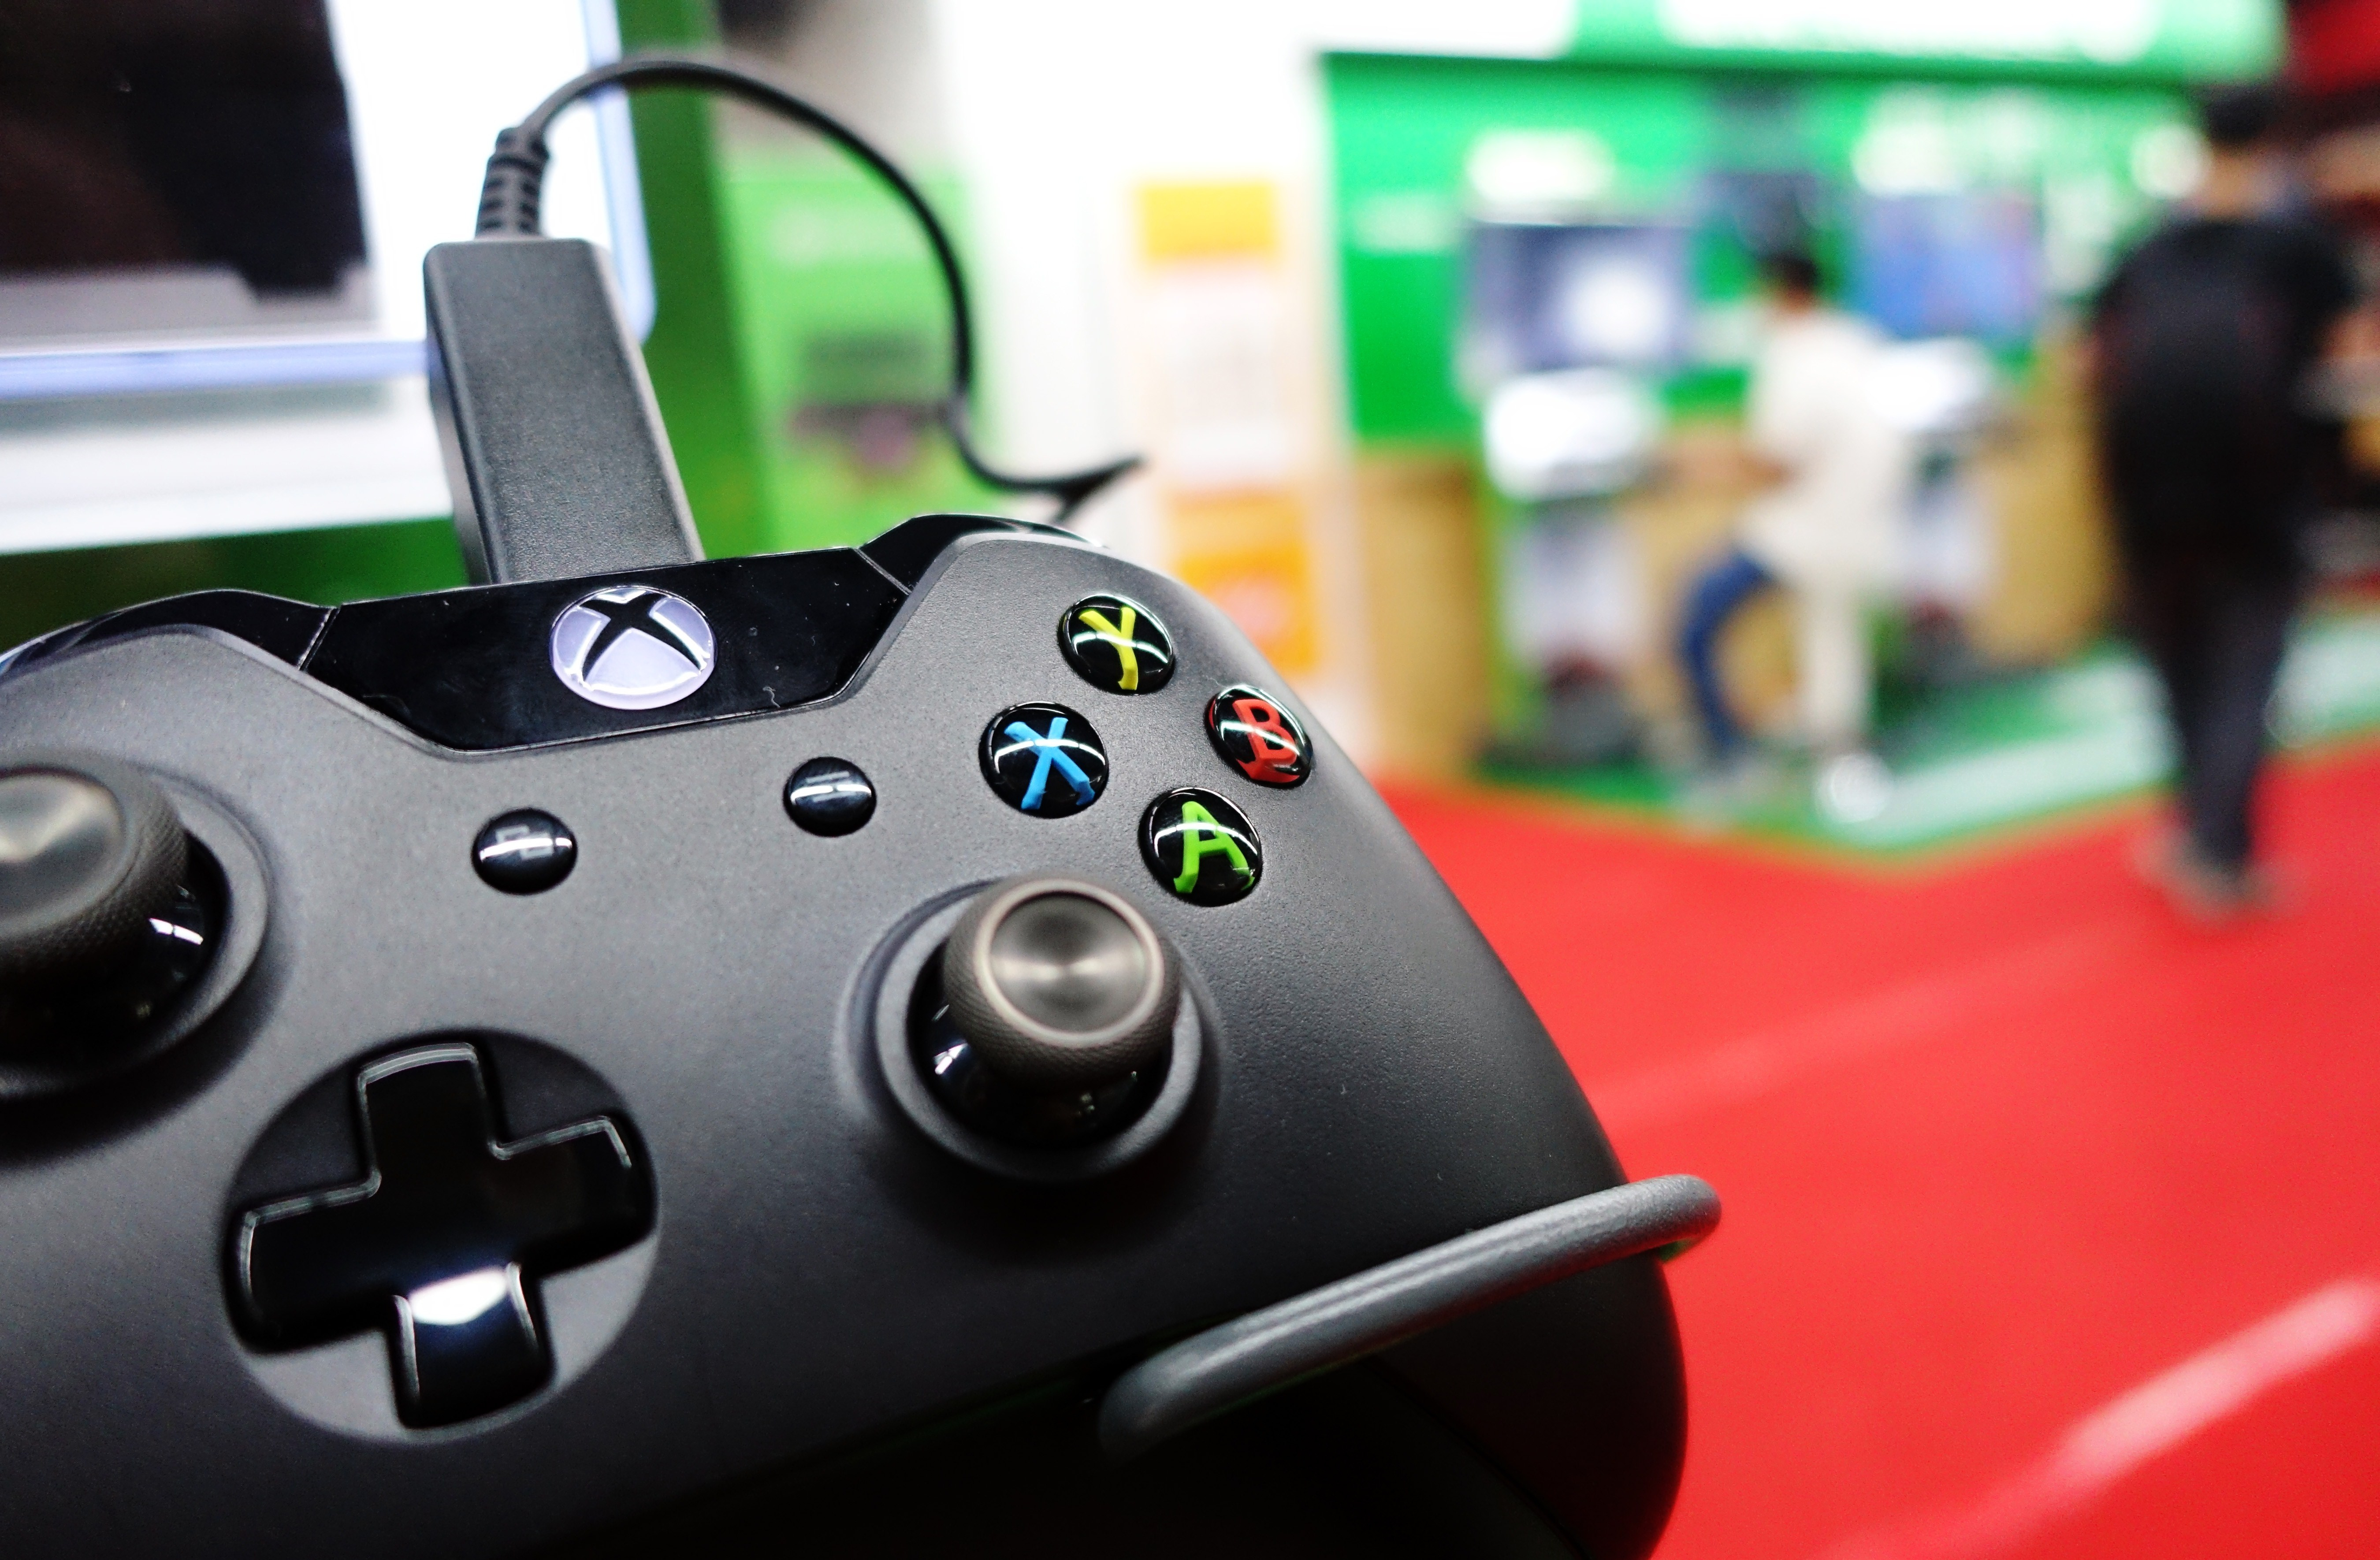 A control of a Microsoft's Xbox One game console is pictured in a shop in Shanghai on September 29, 2014.